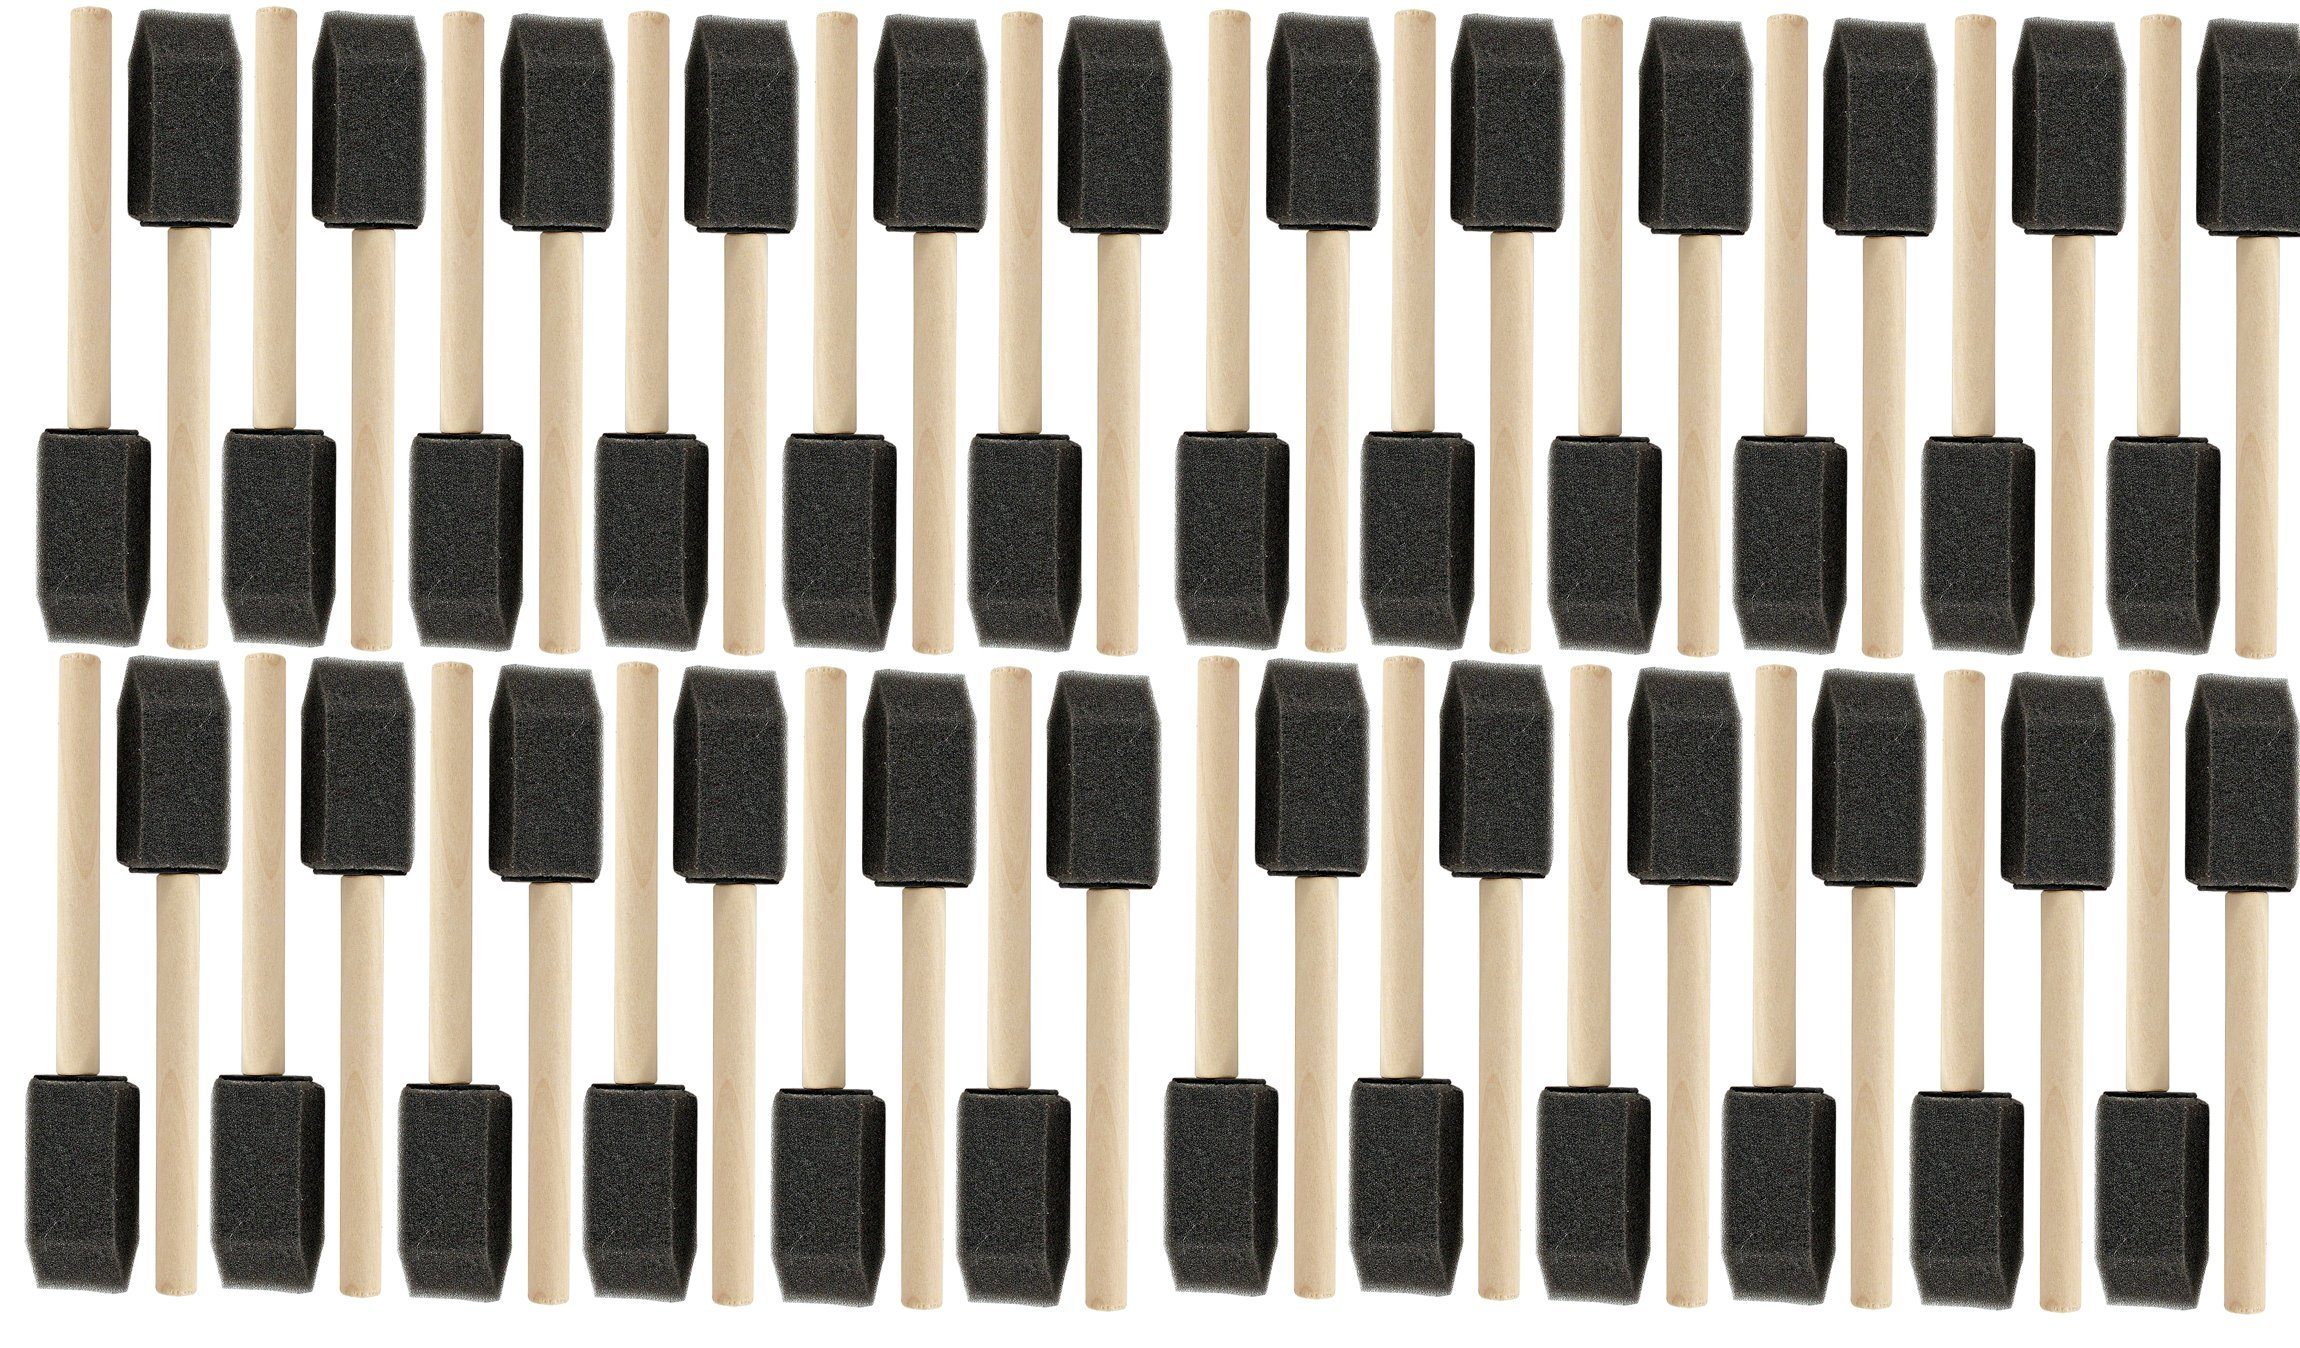 1'' Wooden Handle Poly Foam Brushes 48 PC Set All 1''. Great for crafts, touch ups, art, paints, stains, ((10PK)1'' Wooden Handle Poly Foam Brushes 48 PC Set)